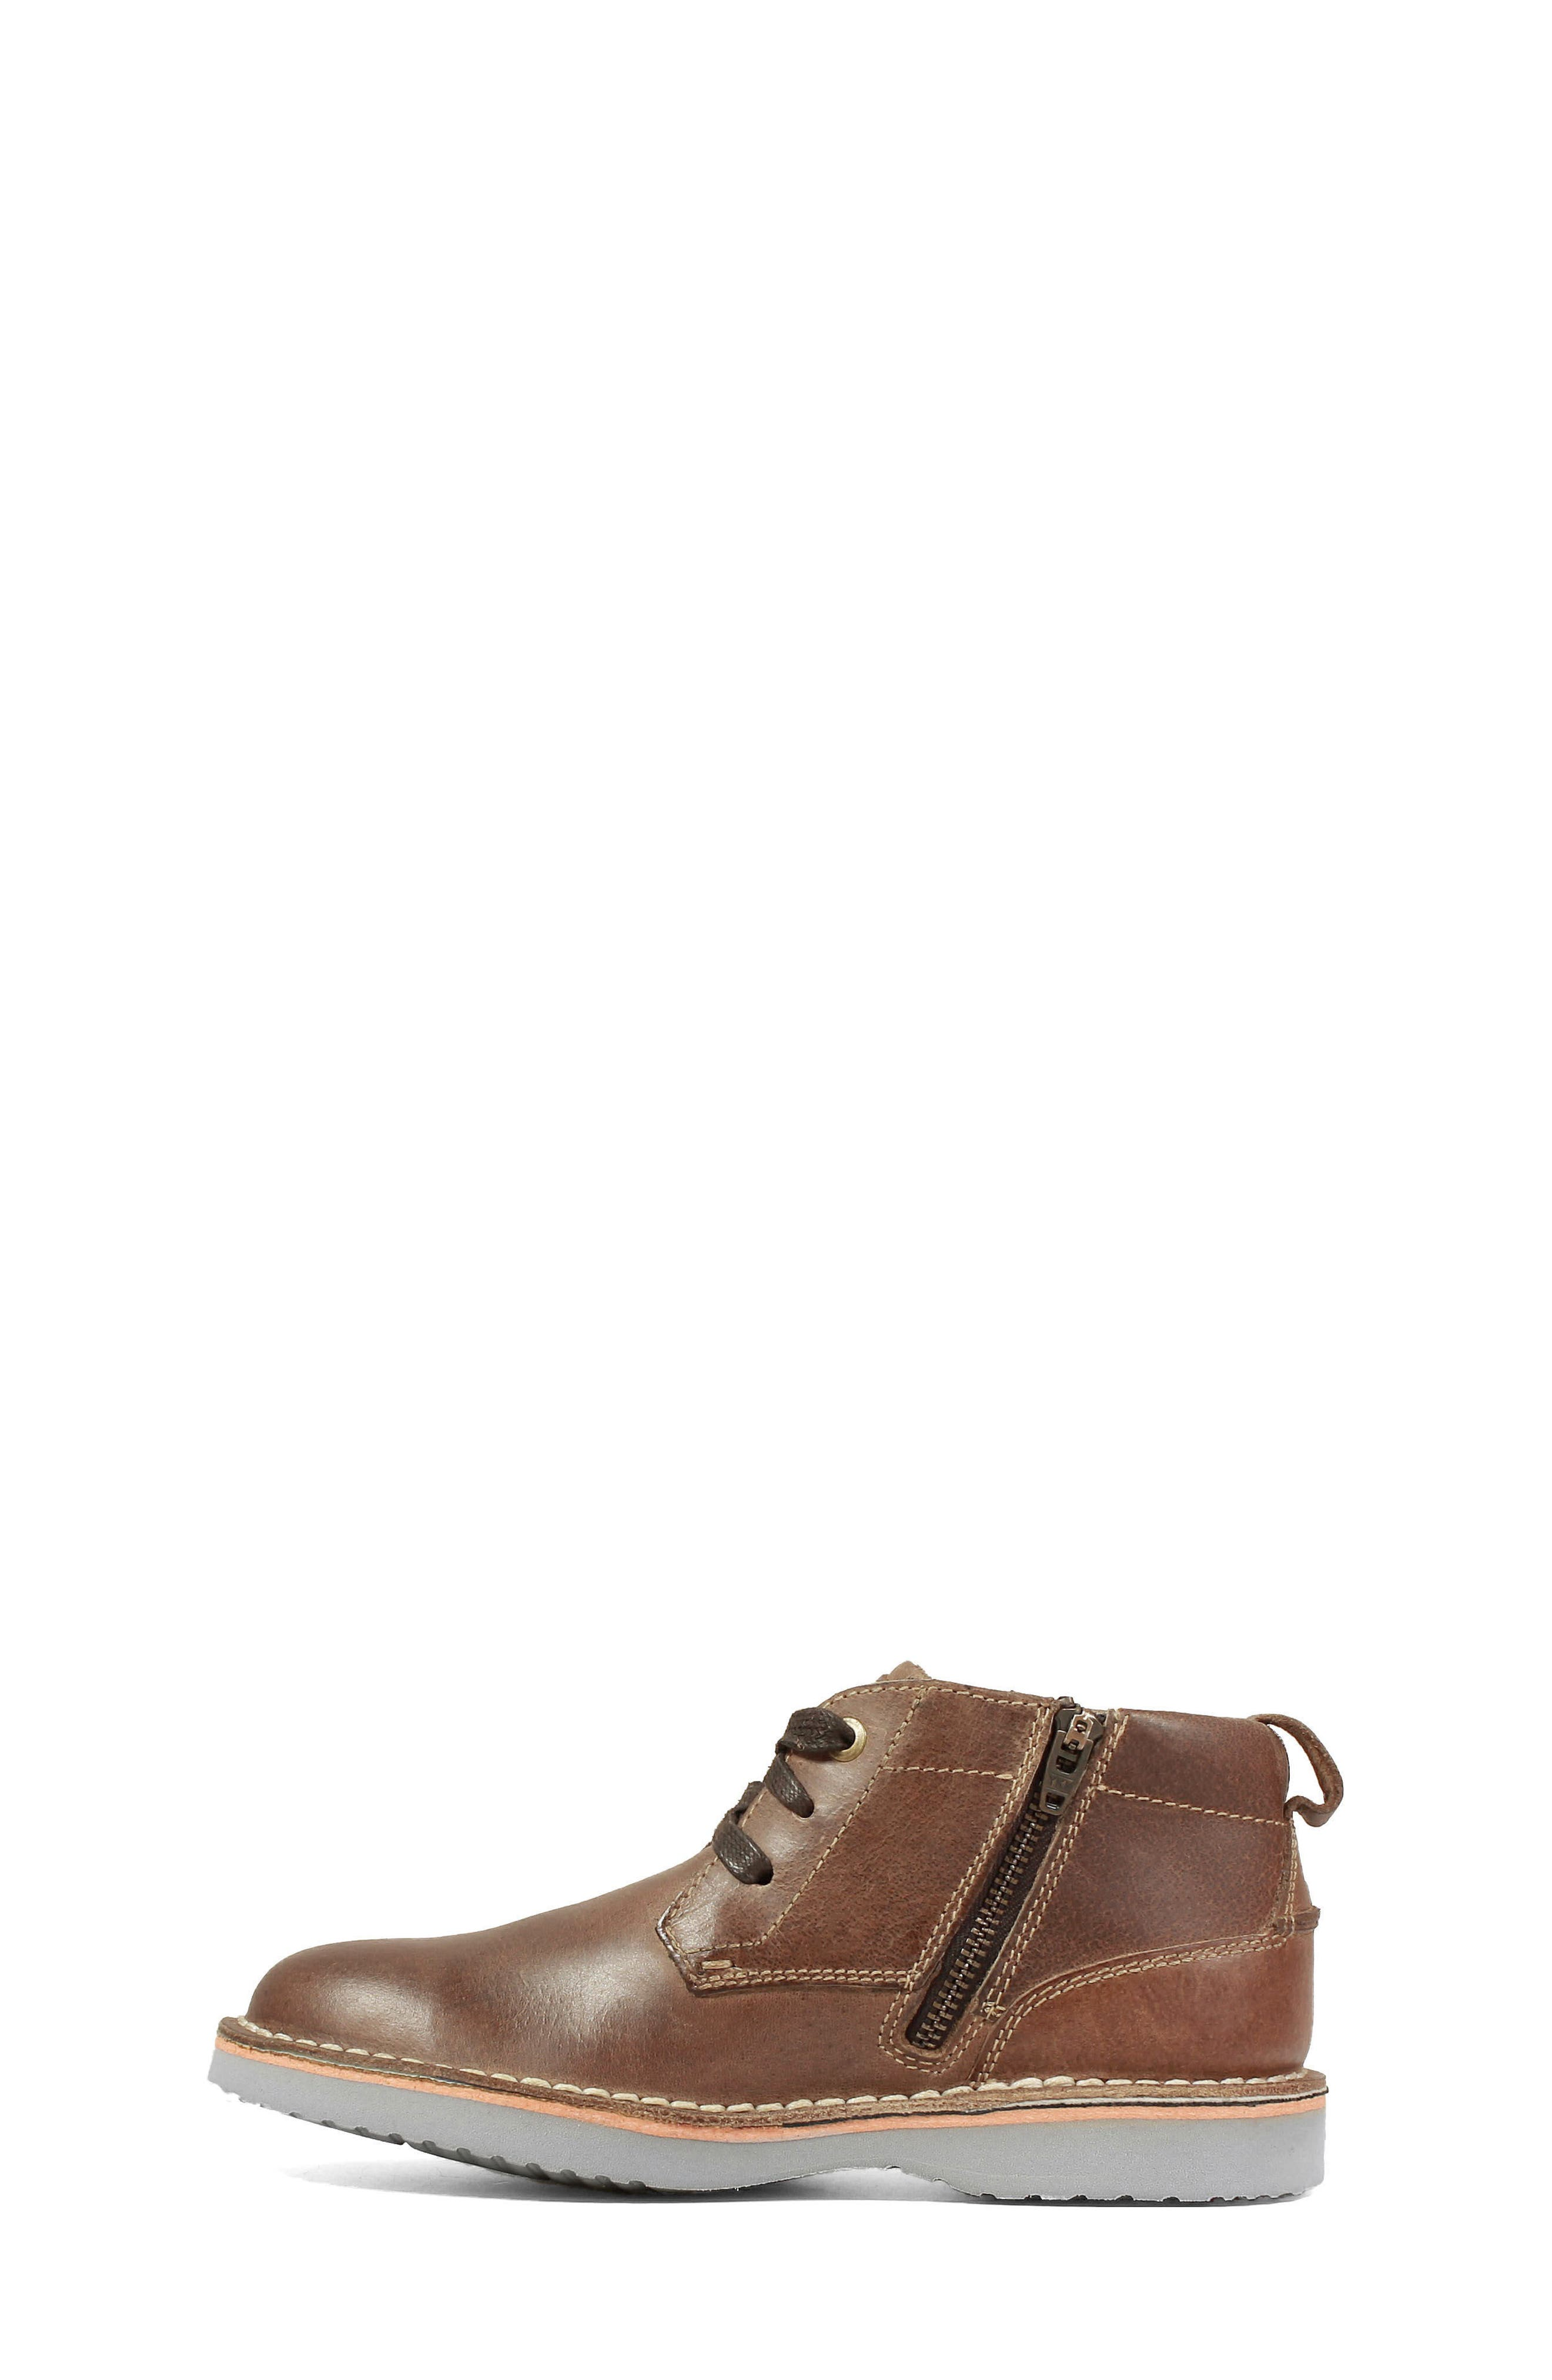 Chukka Boot,                             Alternate thumbnail 8, color,                             BROWN CRAZY HORSE LEATHER